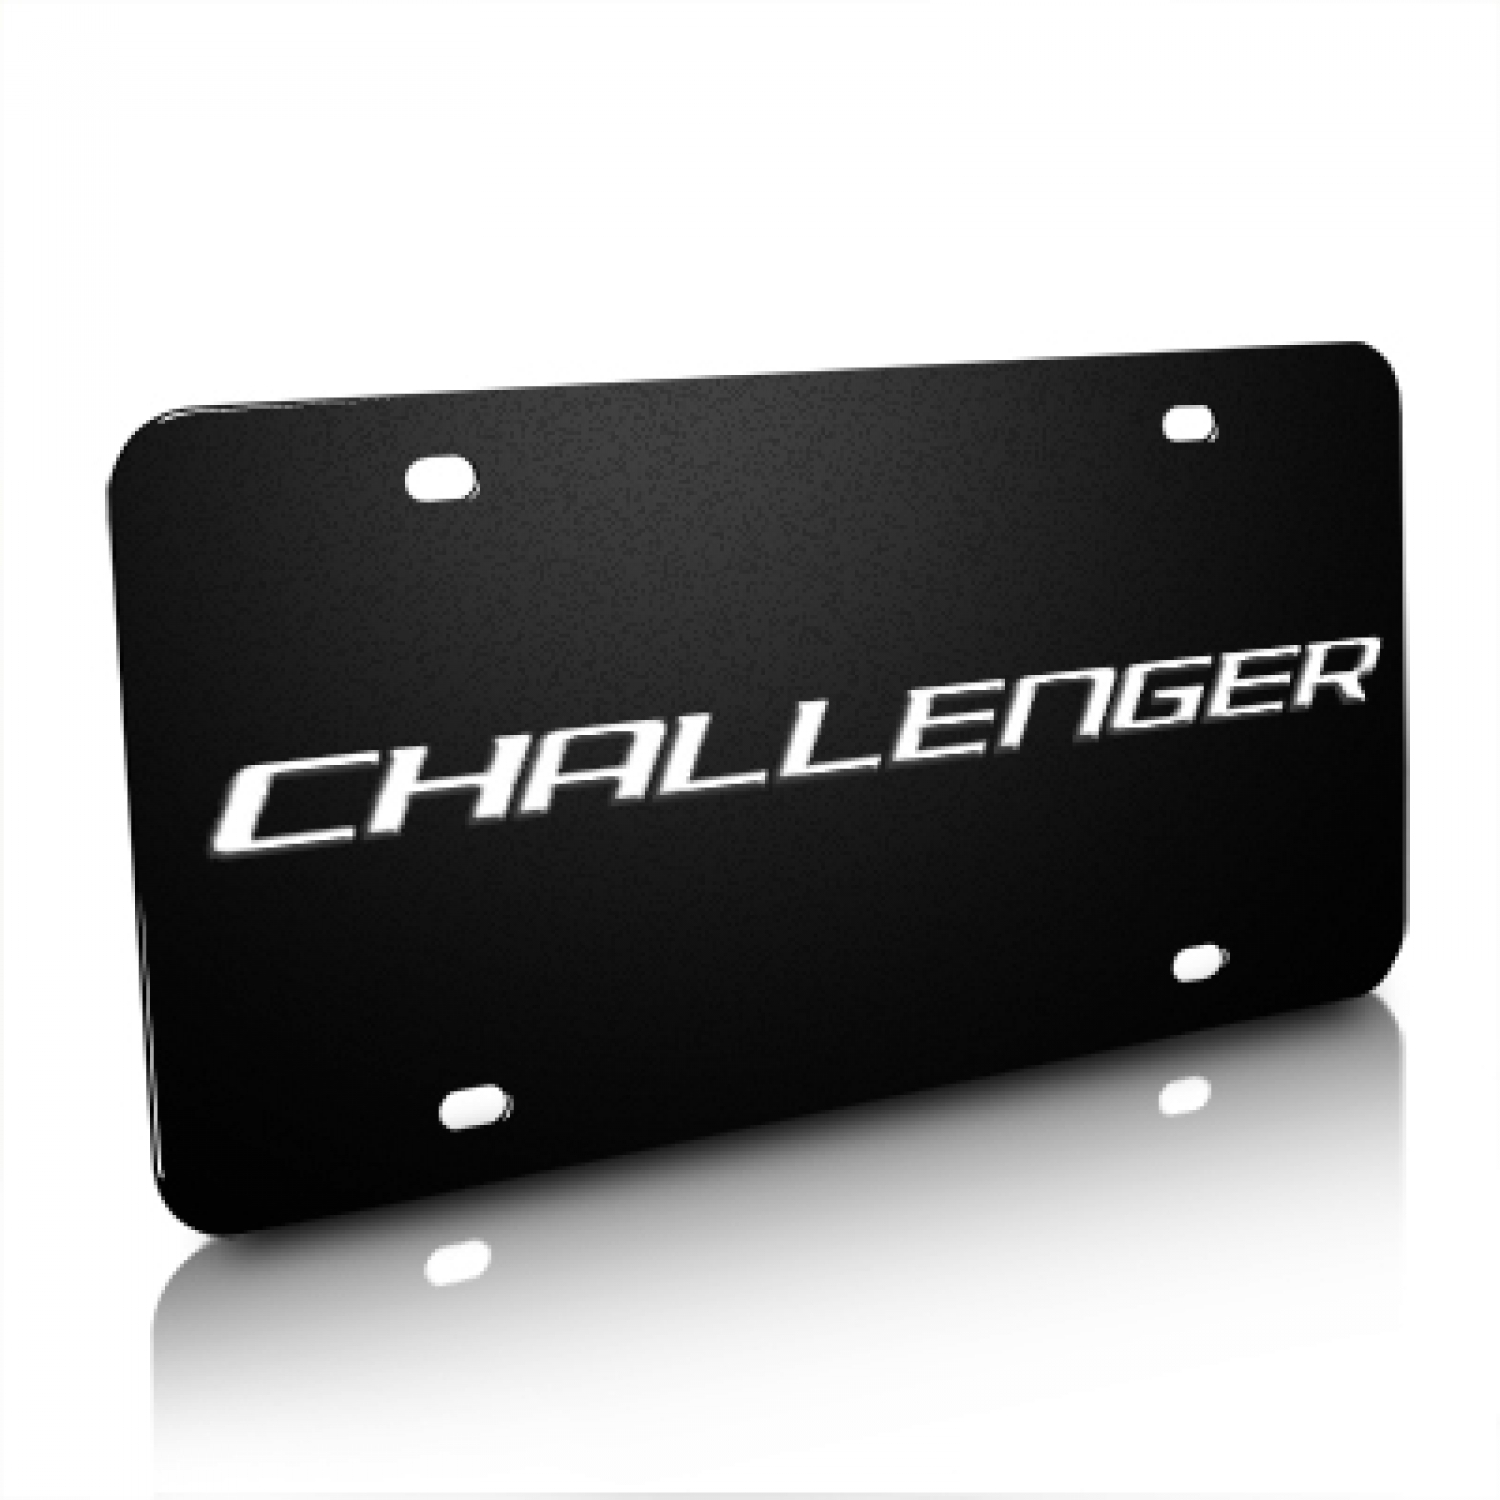 Dodge Challenger Nameplate 3D Logo Black Stainless Steel License Plate